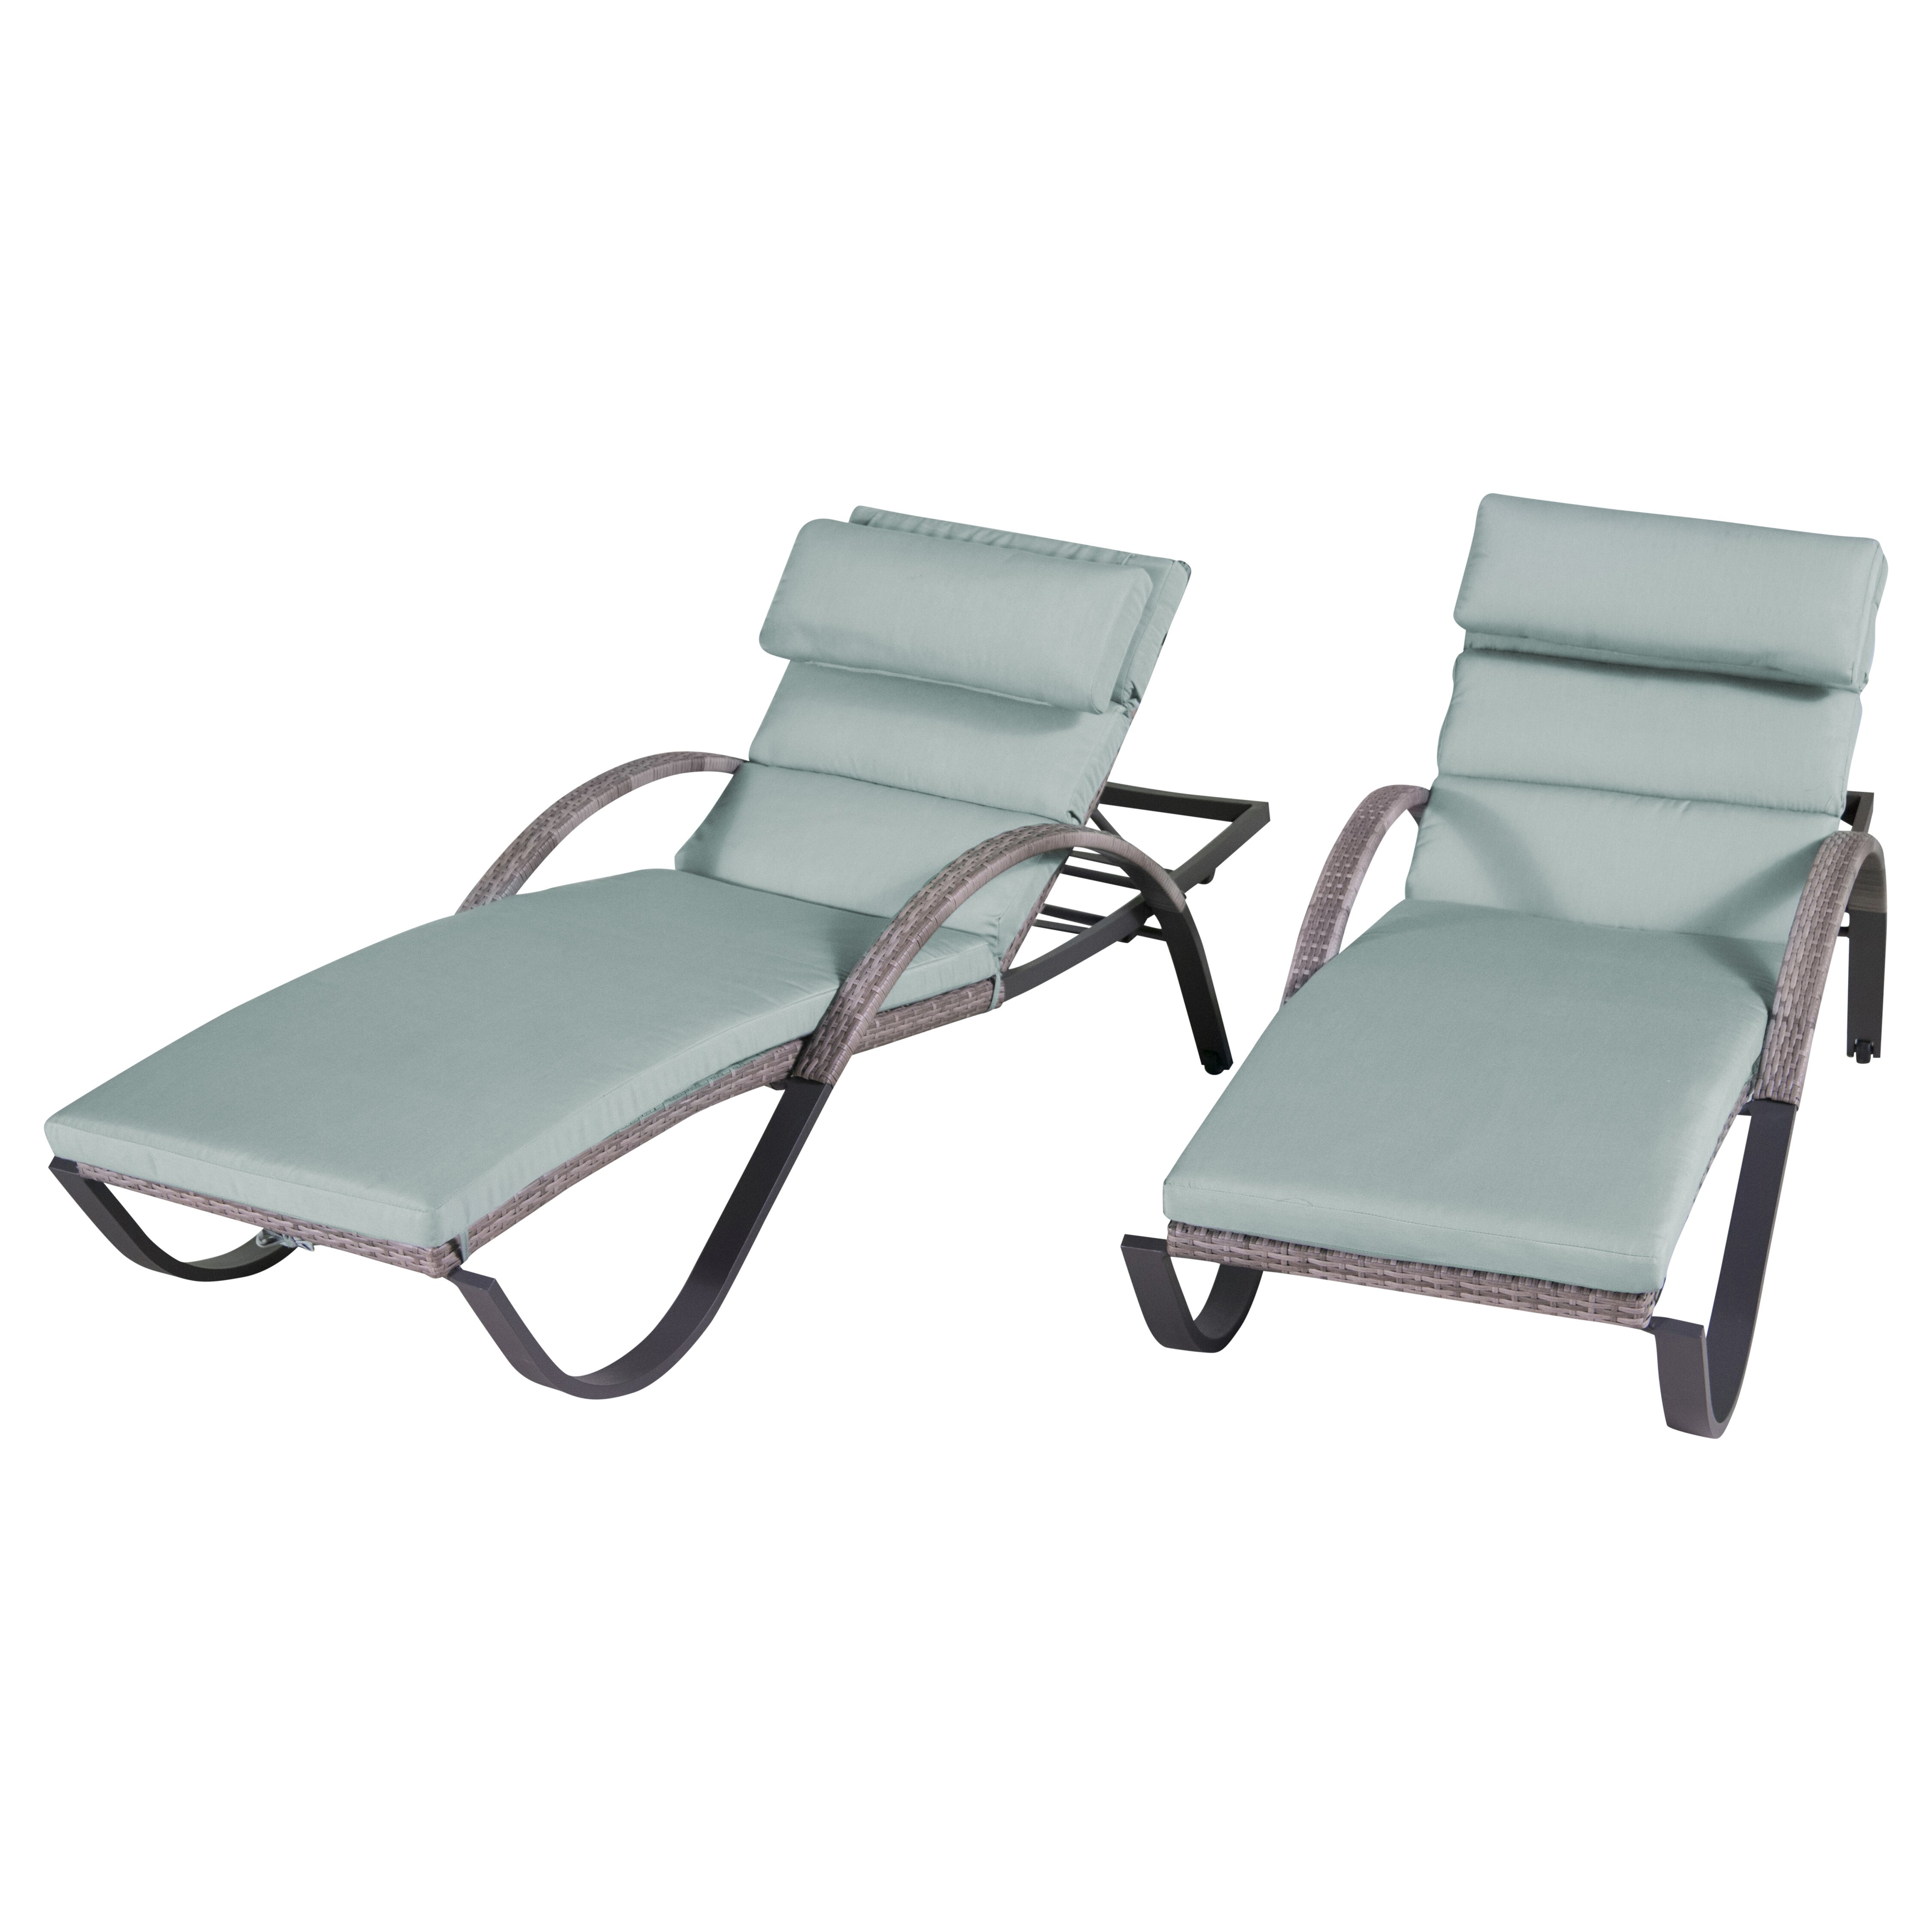 Wade logan alfonso chaise lounges with cushion reviews for Chaise lounge cushions